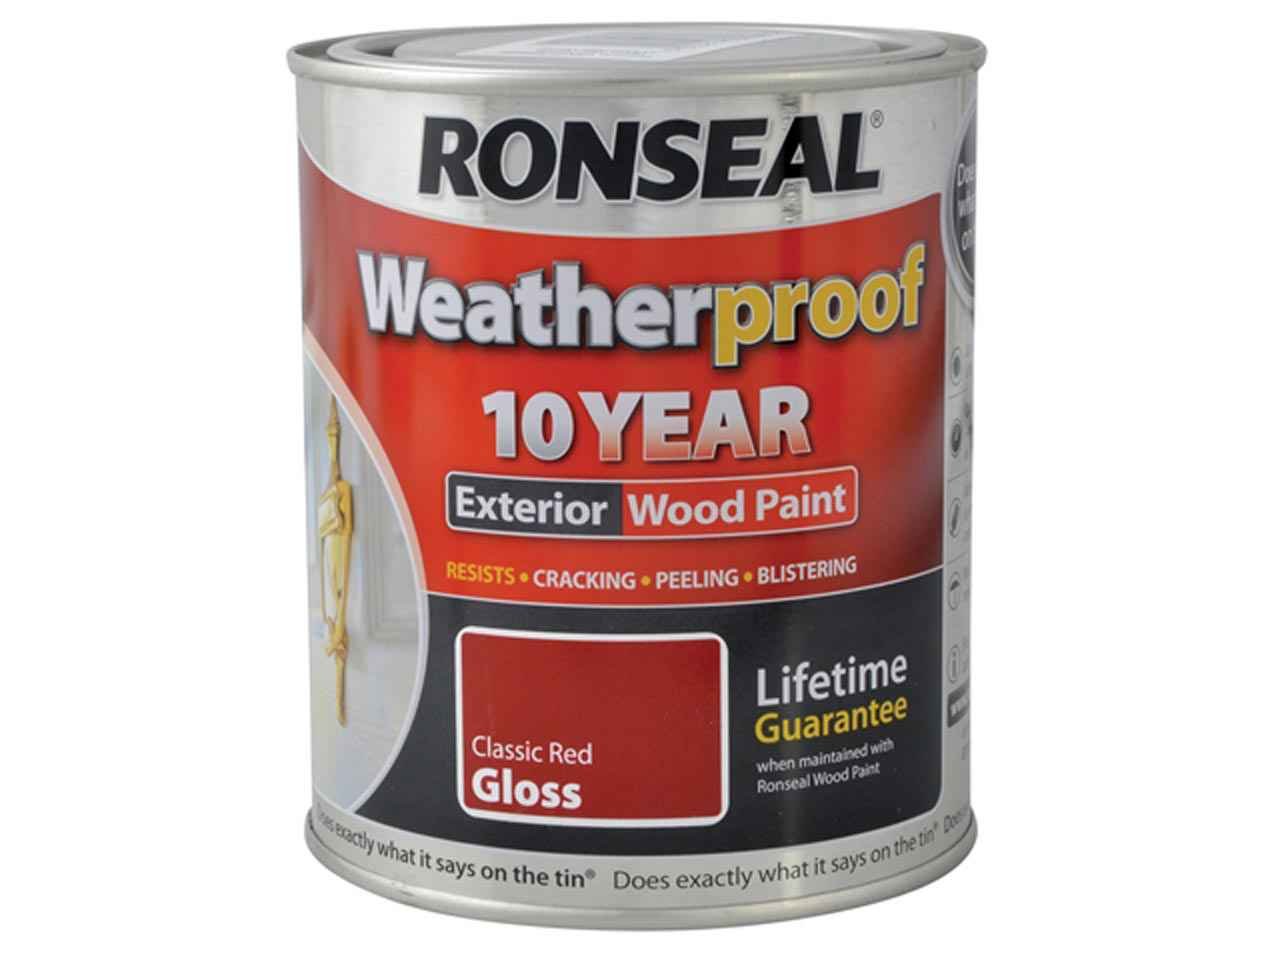 Ronseal 36476 Weatherproof 10 Year Exterior Wood Paint Cherry Red Gloss 750ml